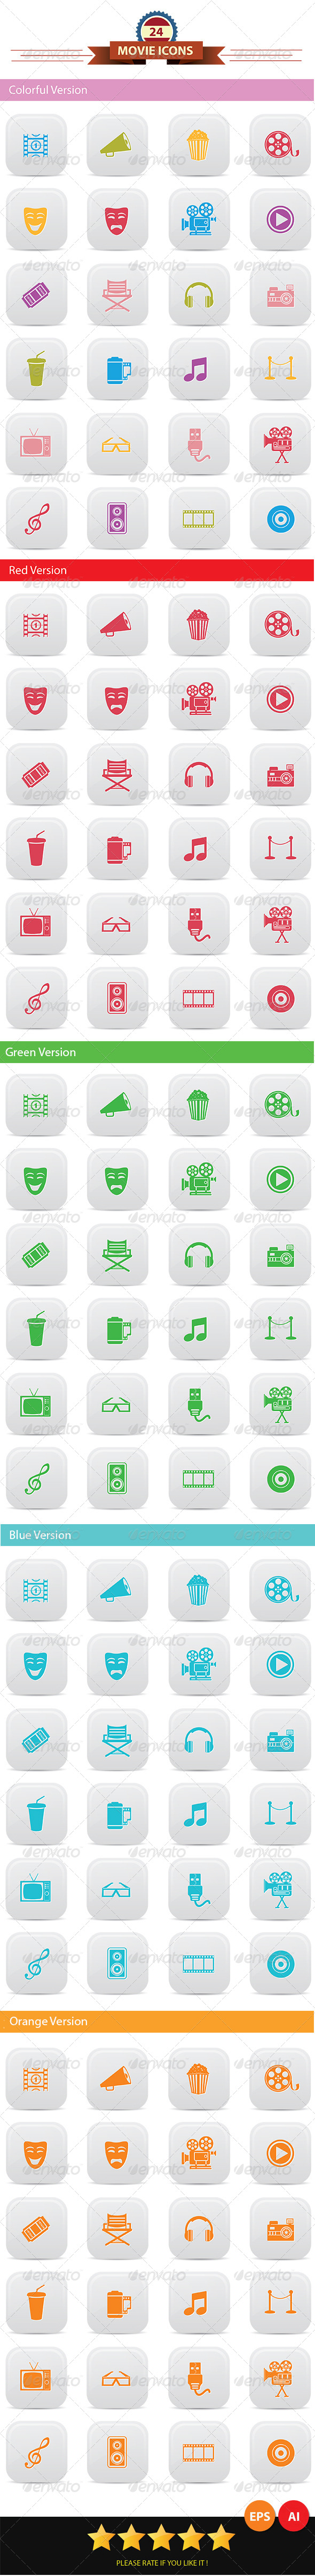 GraphicRiver Movie Icons 6769724